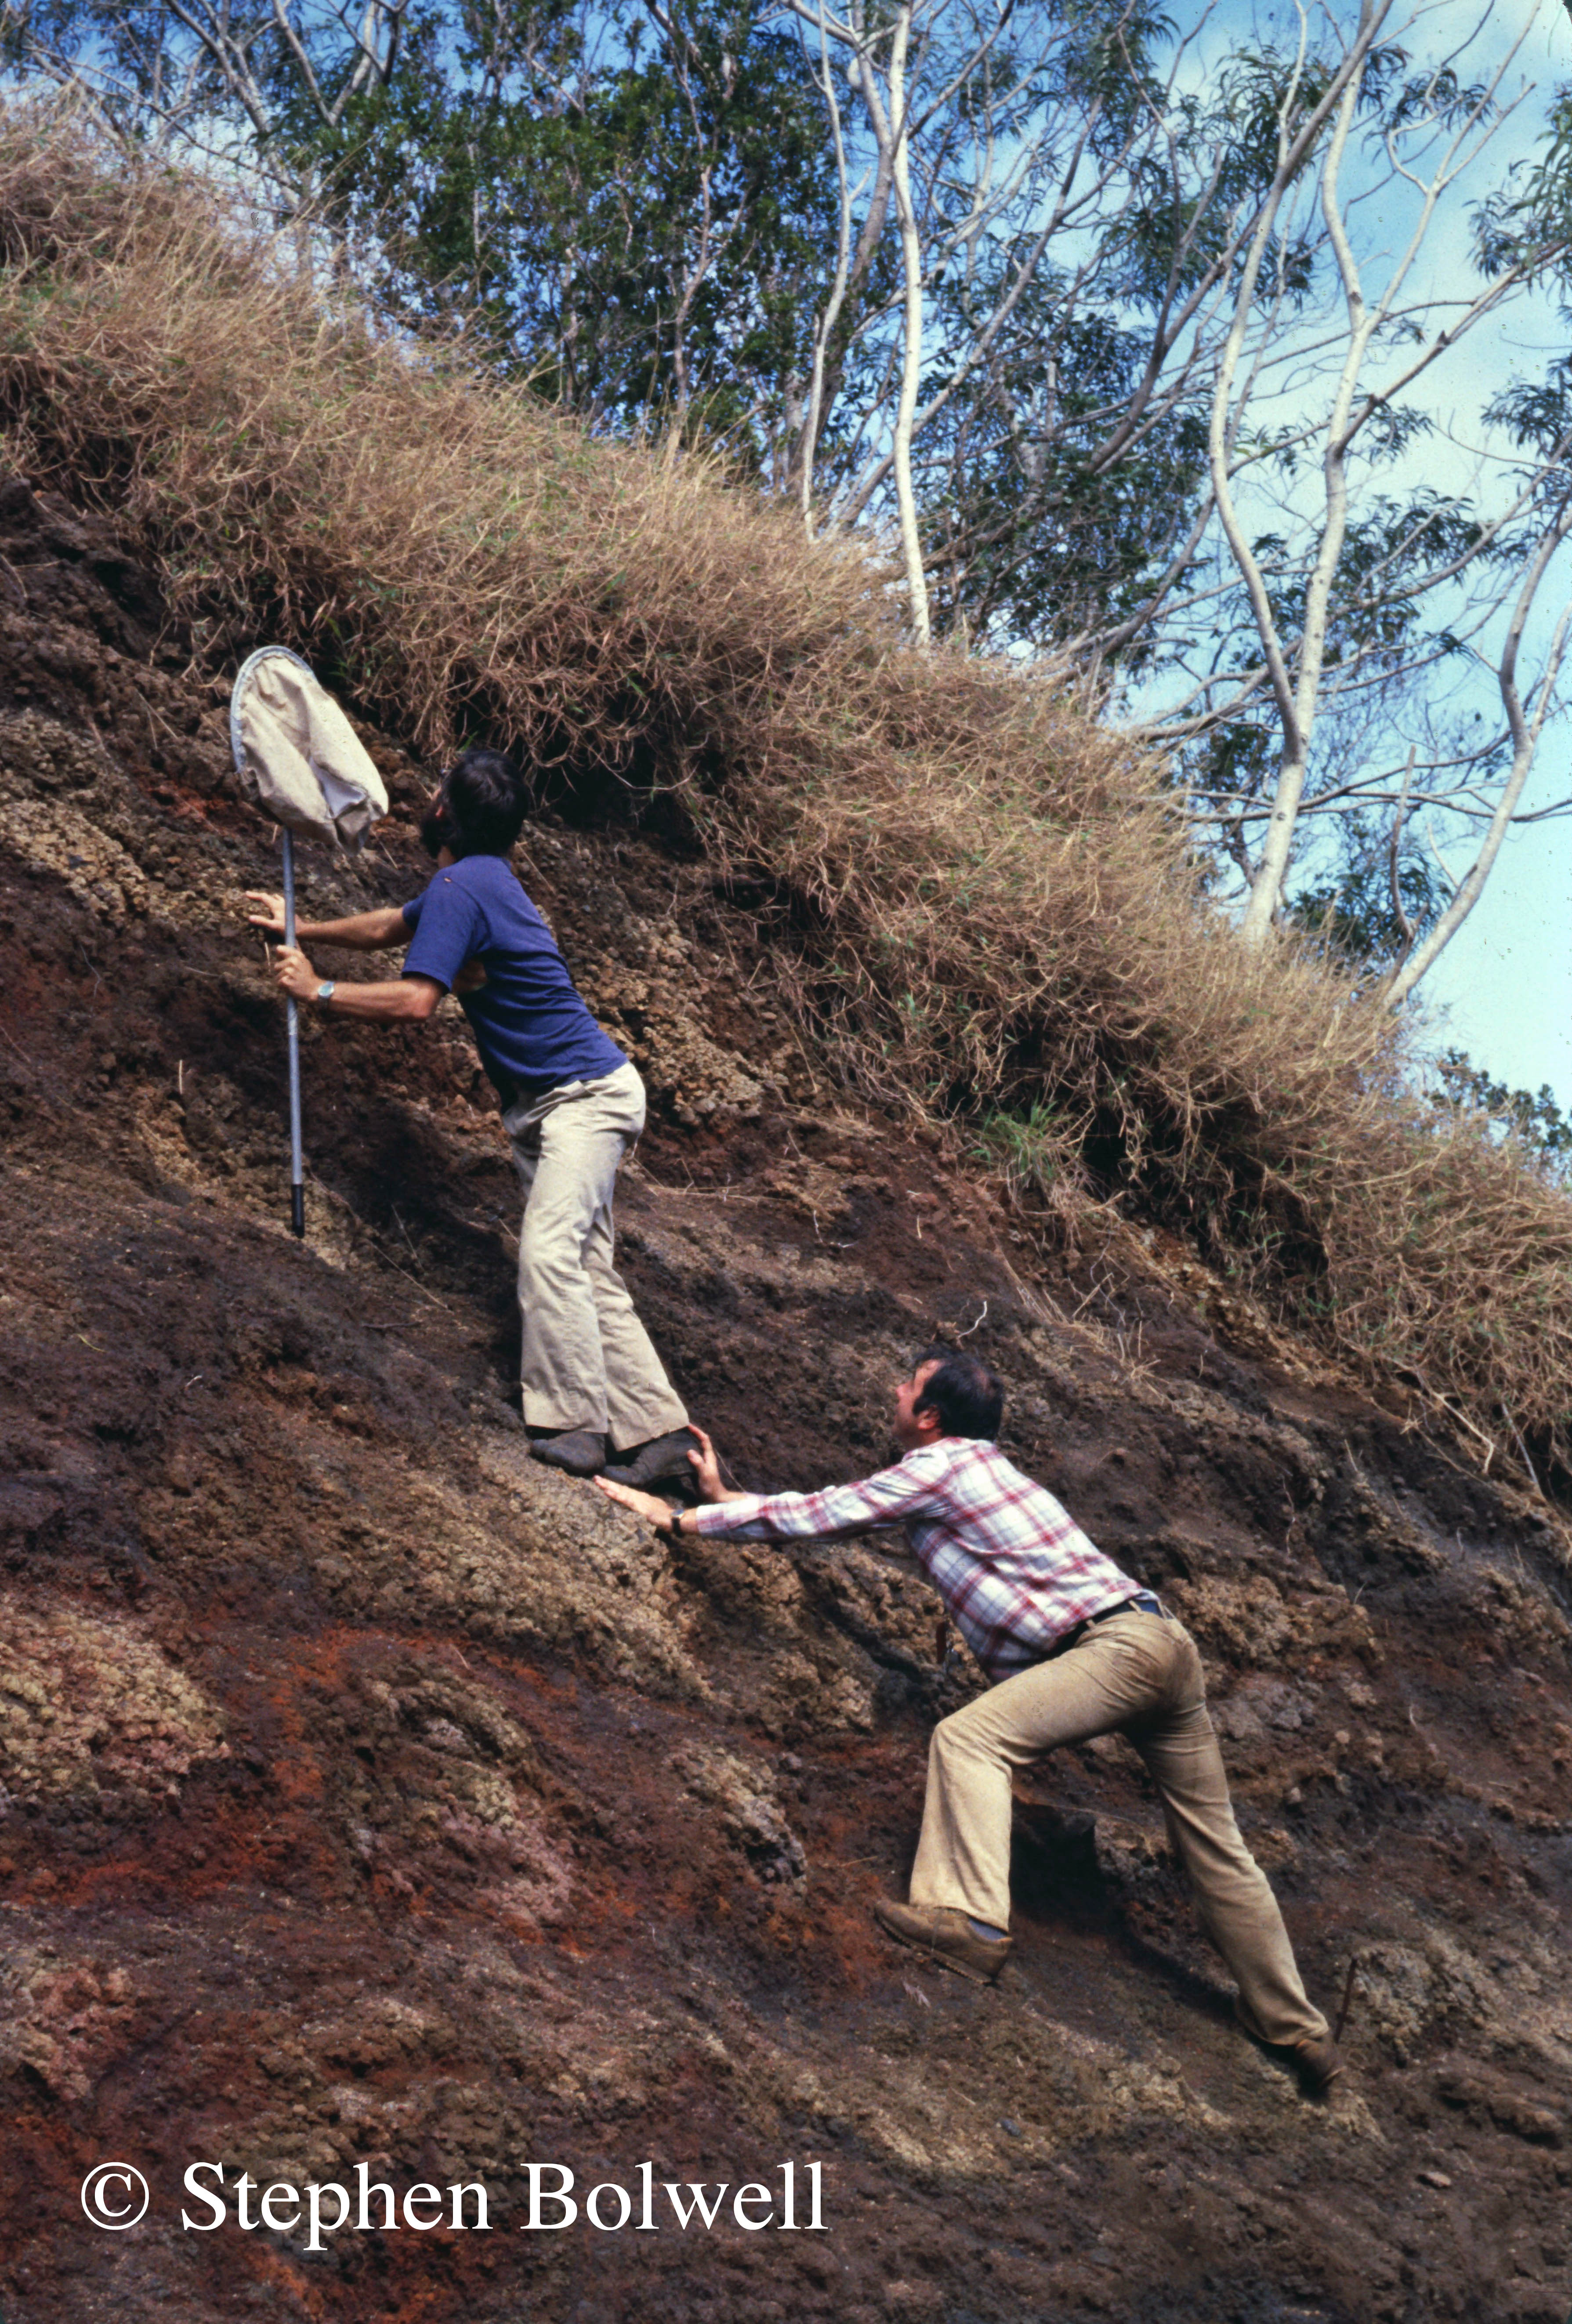 Roger Jones supporting Steve Montgomery (with the net) collecting specimens for filming in 1980.